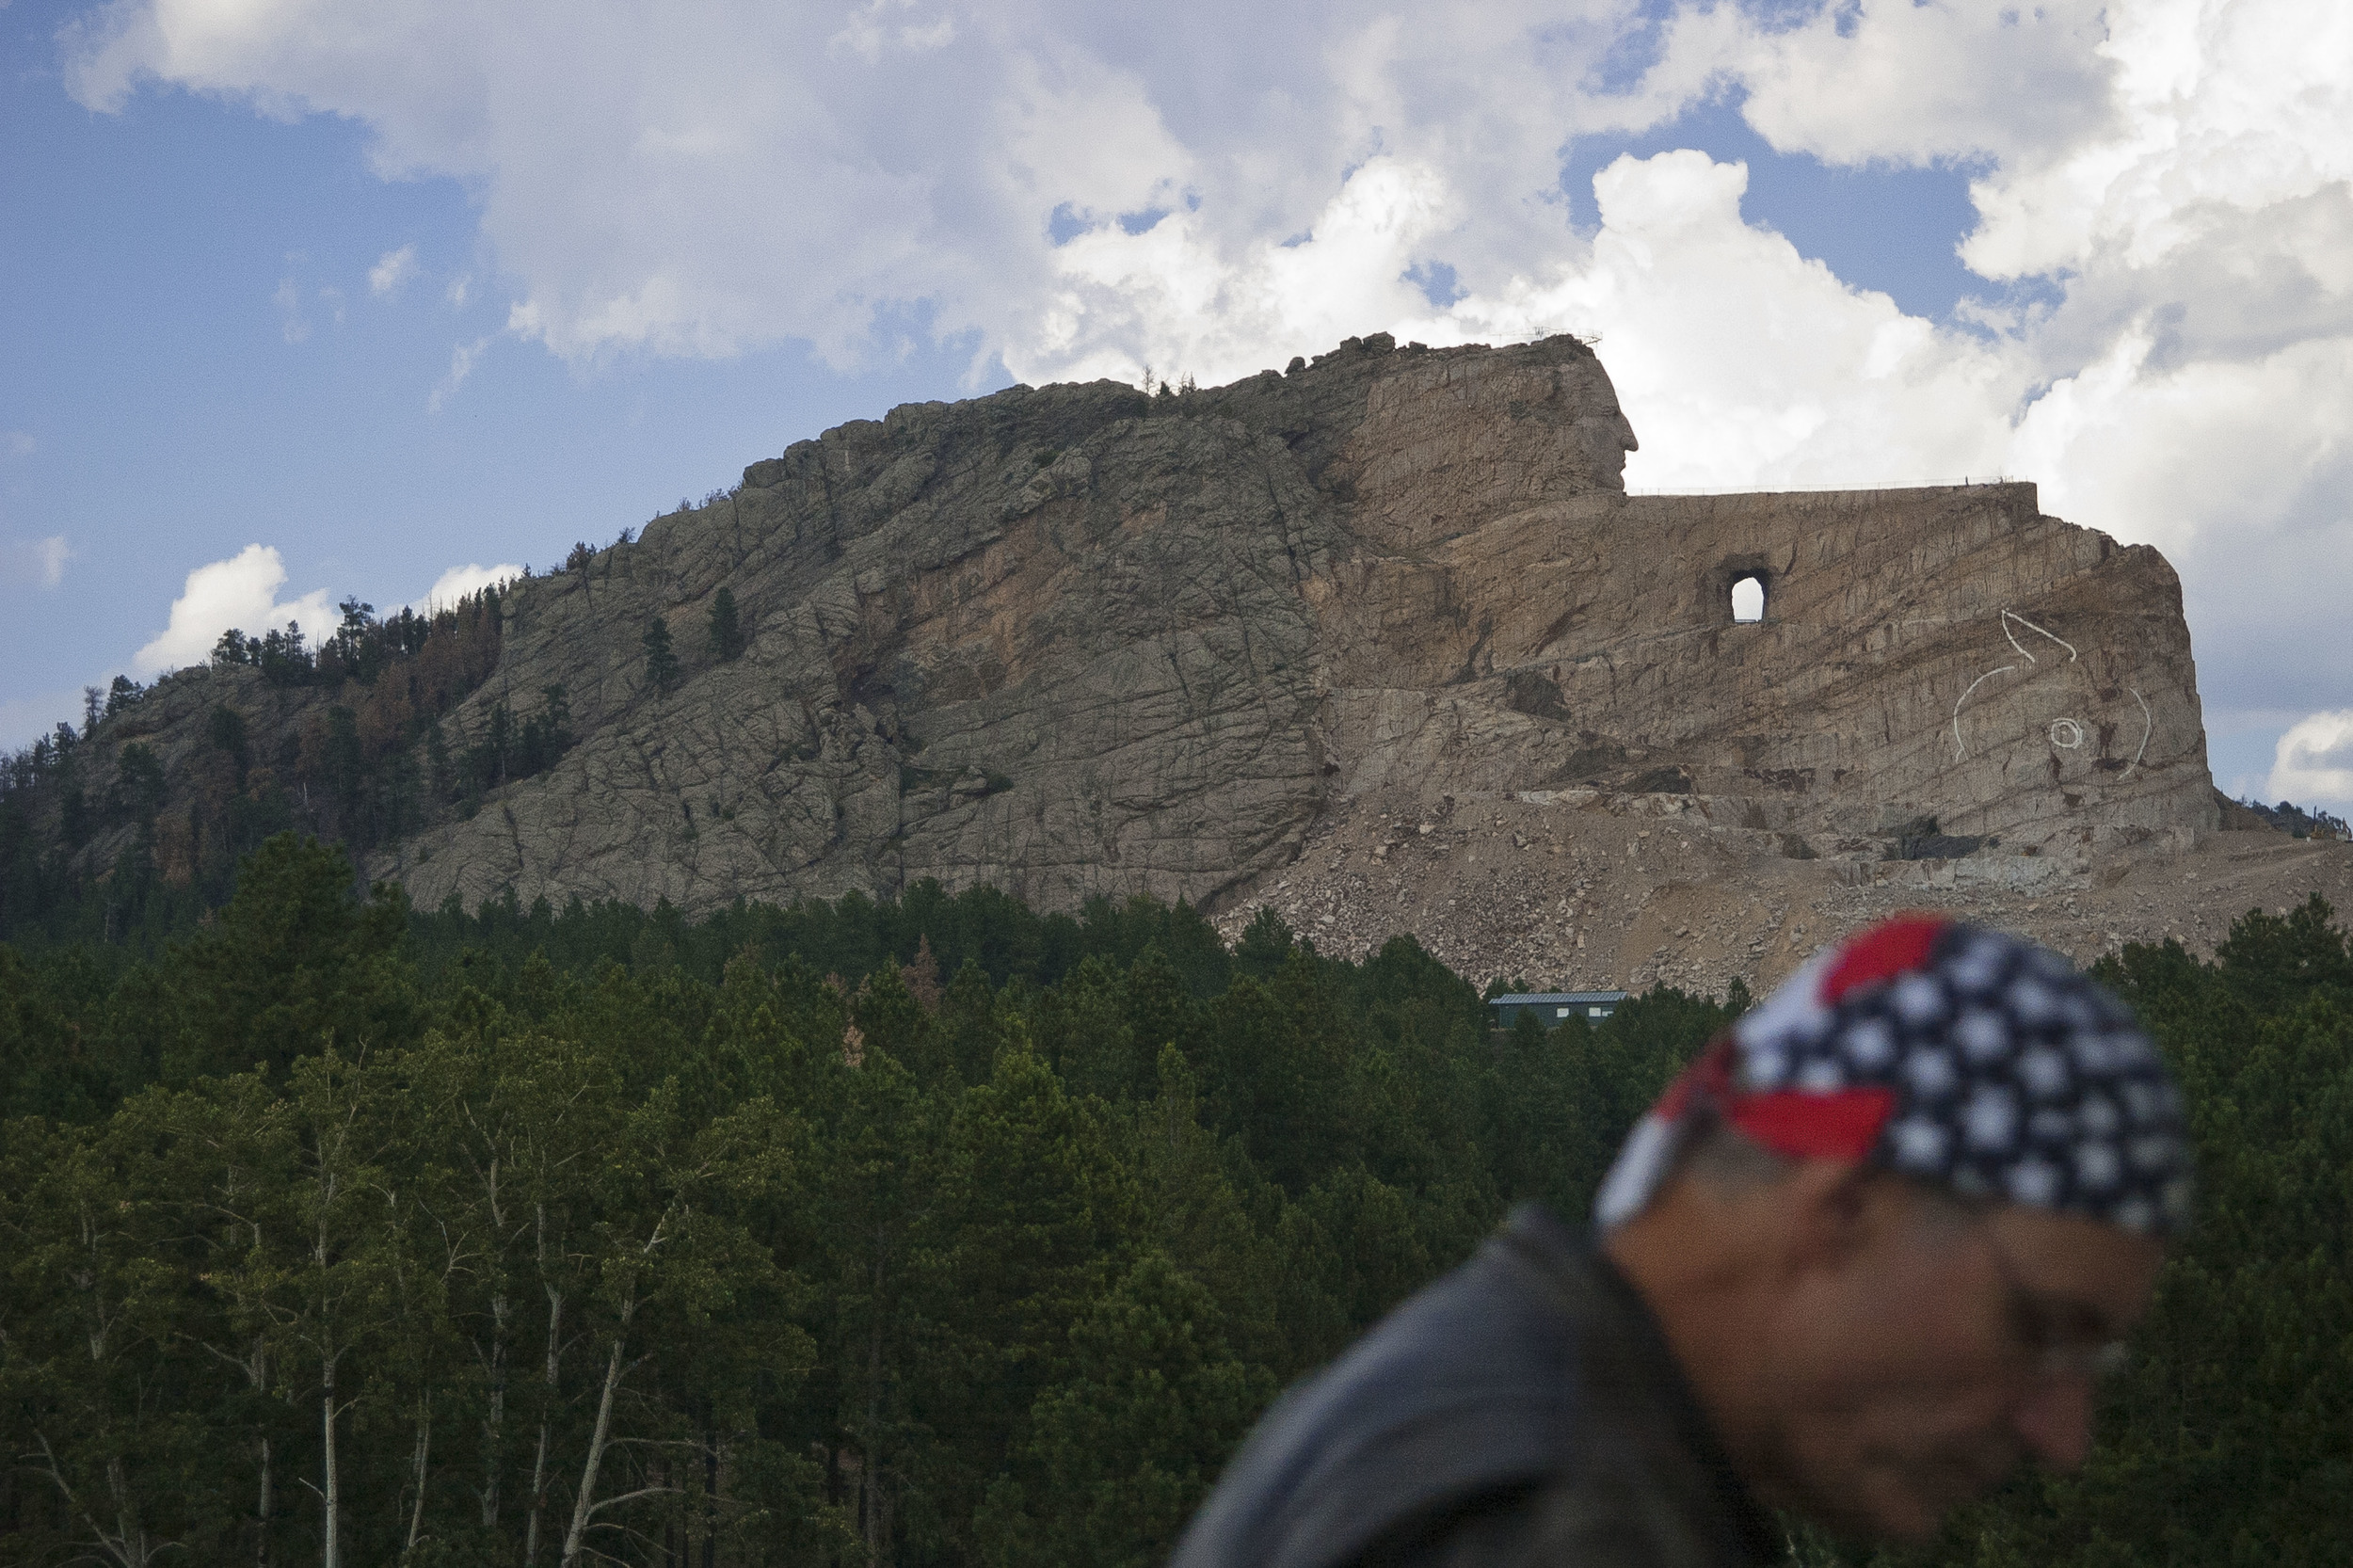 Crazy Horse monument, South Dakota. Controversy has surrounded the project since work on the massive sculpture was started in 1948. It represents the second time mountains in the black hills--holy land and burial grounds of the Sioux--have been carved out for monuments, after Mount Rushmore.